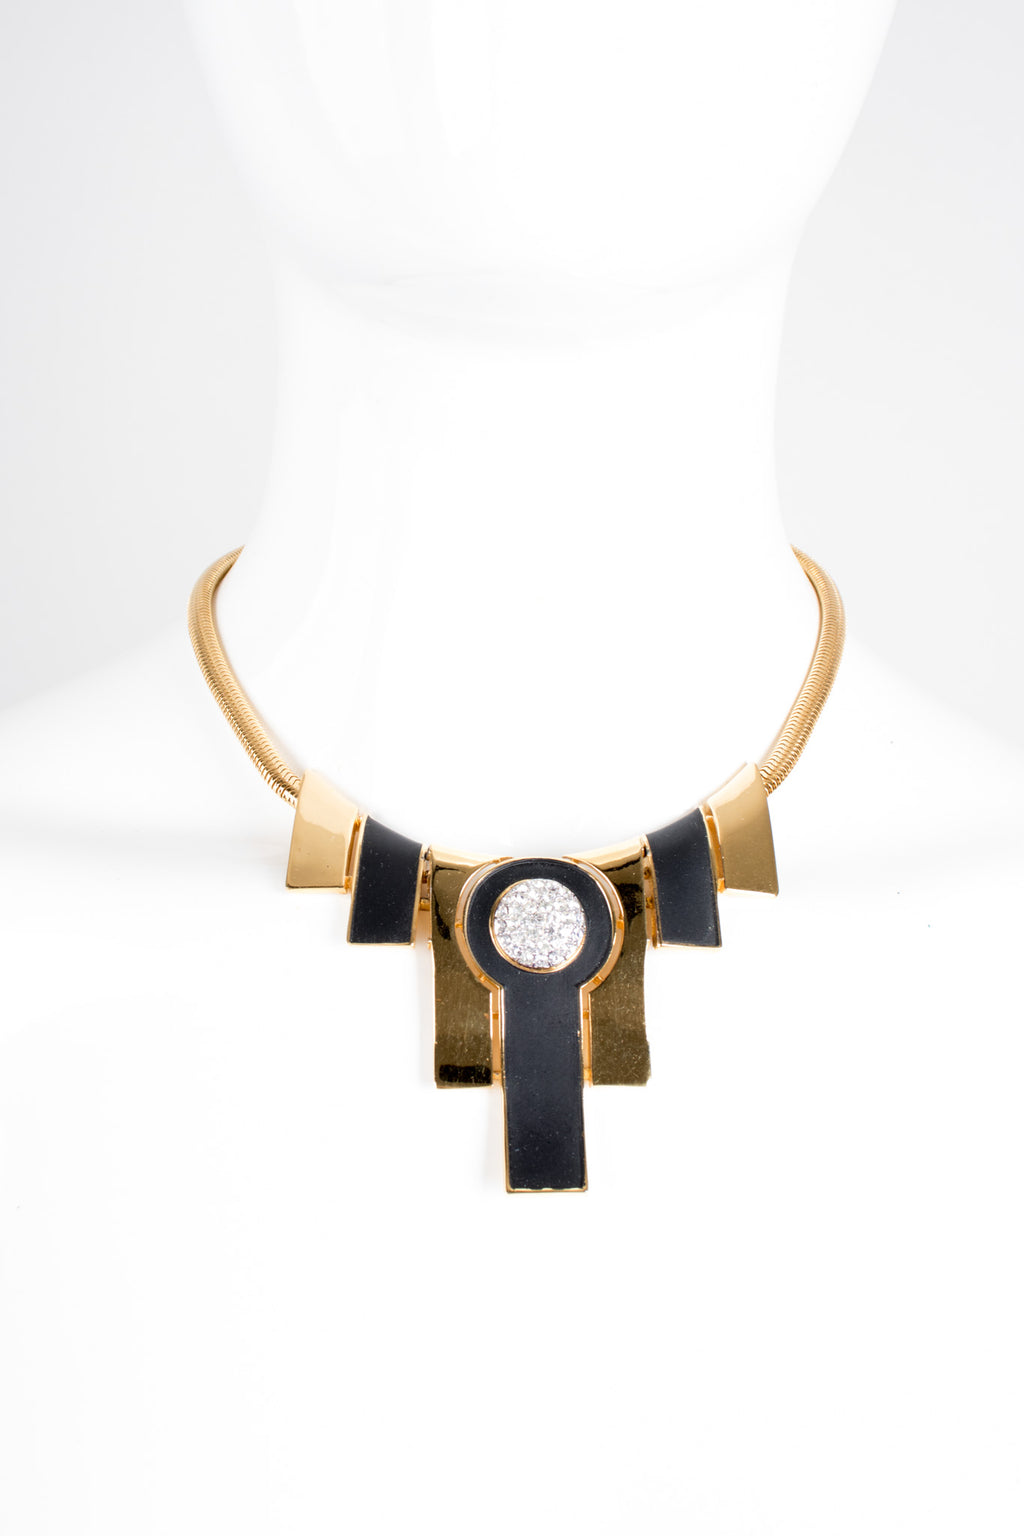 Trifari Art Deco Geometric Empire Collar Necklace